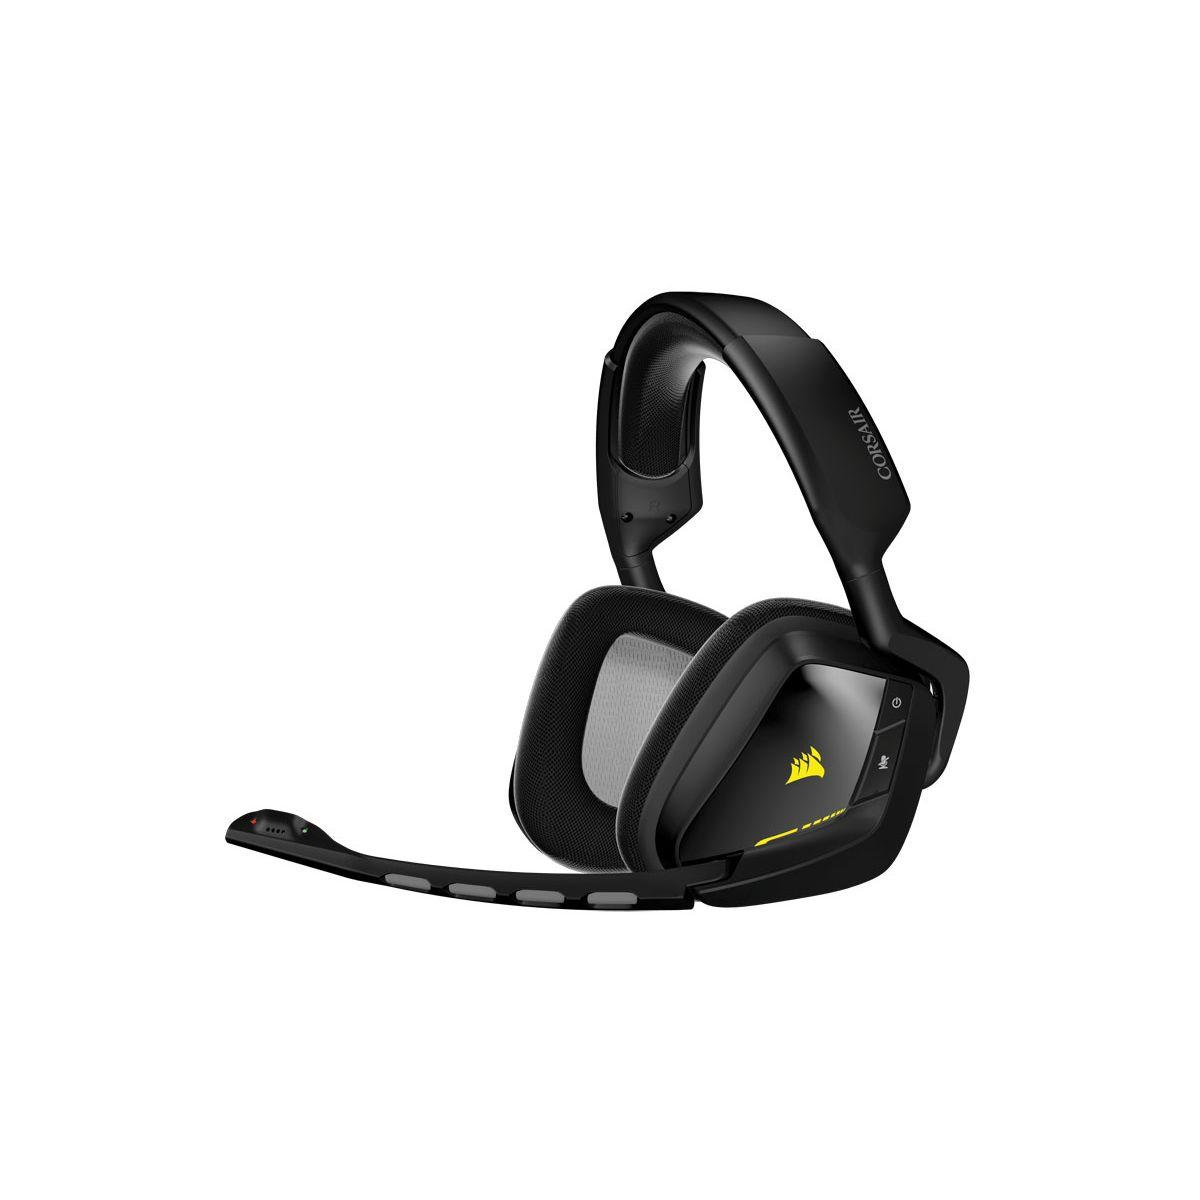 Casque micro gamer corsair void rgb wireless 7.1 (photo)